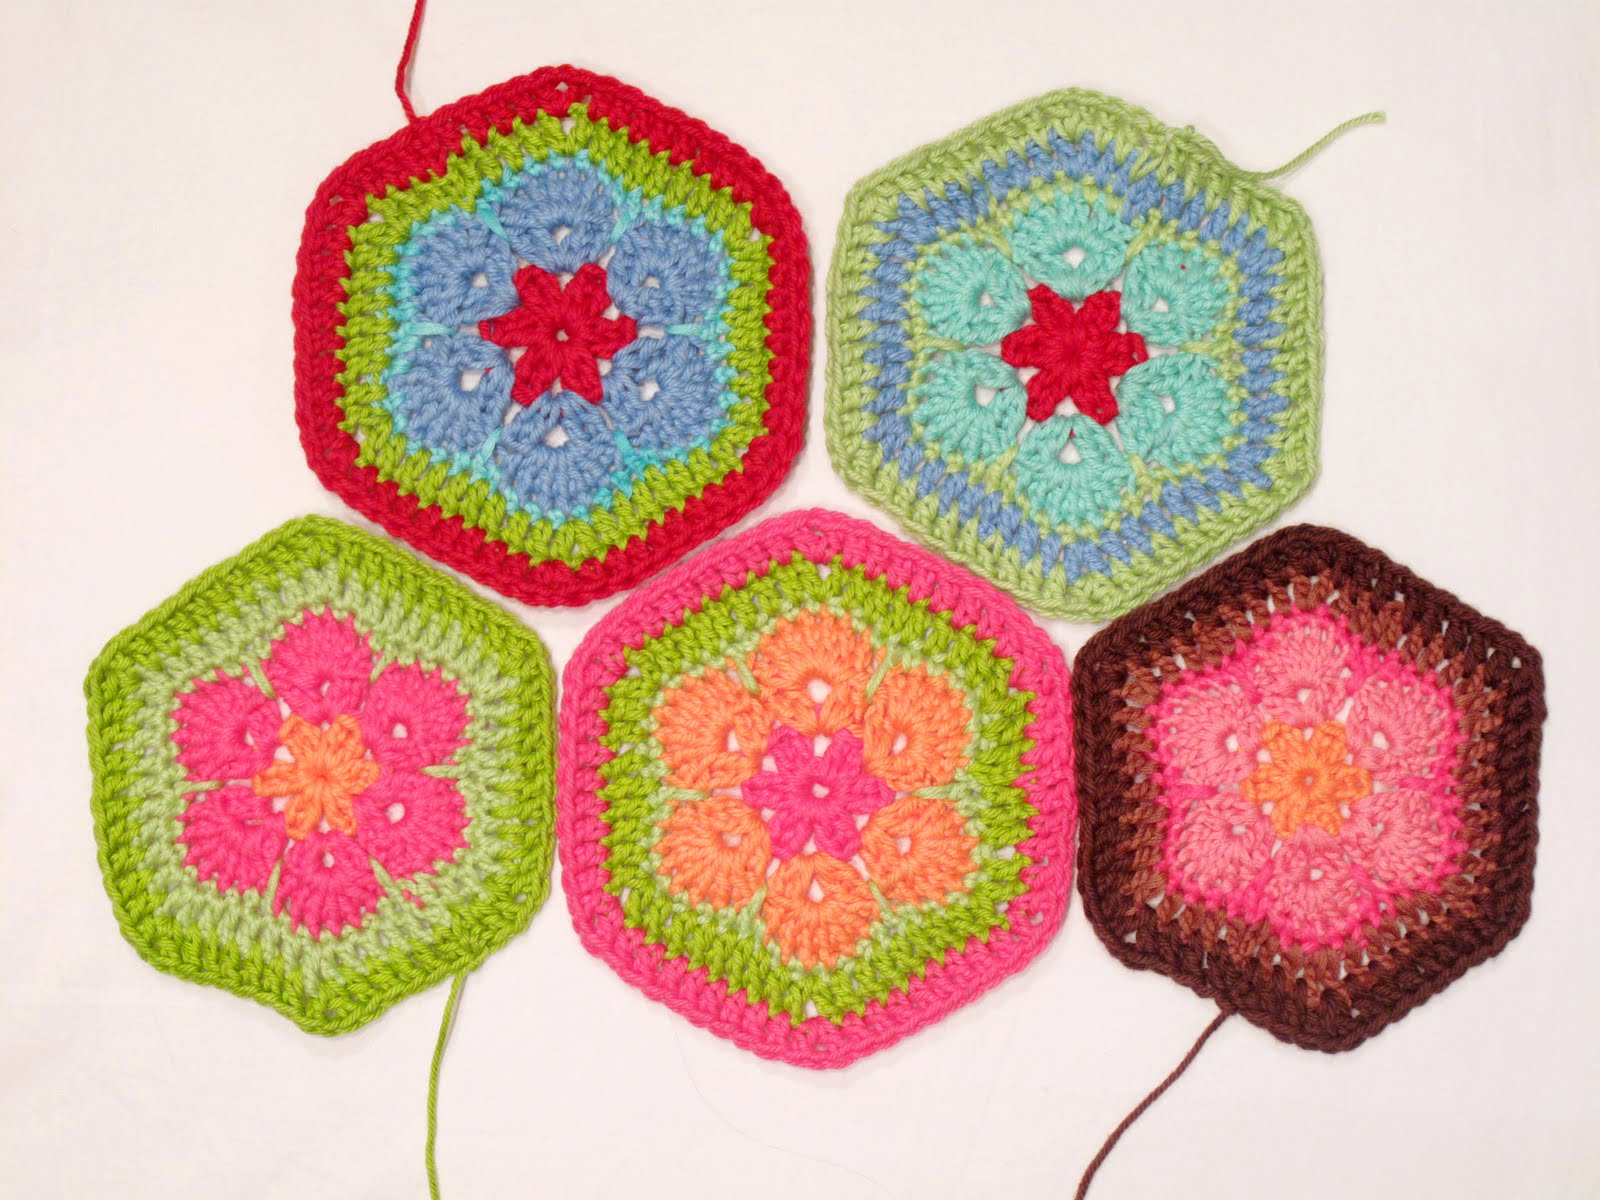 Crochet African Flower Pattern Free : Heidi Bears: African Flower Hexagon Crochet Tutorial